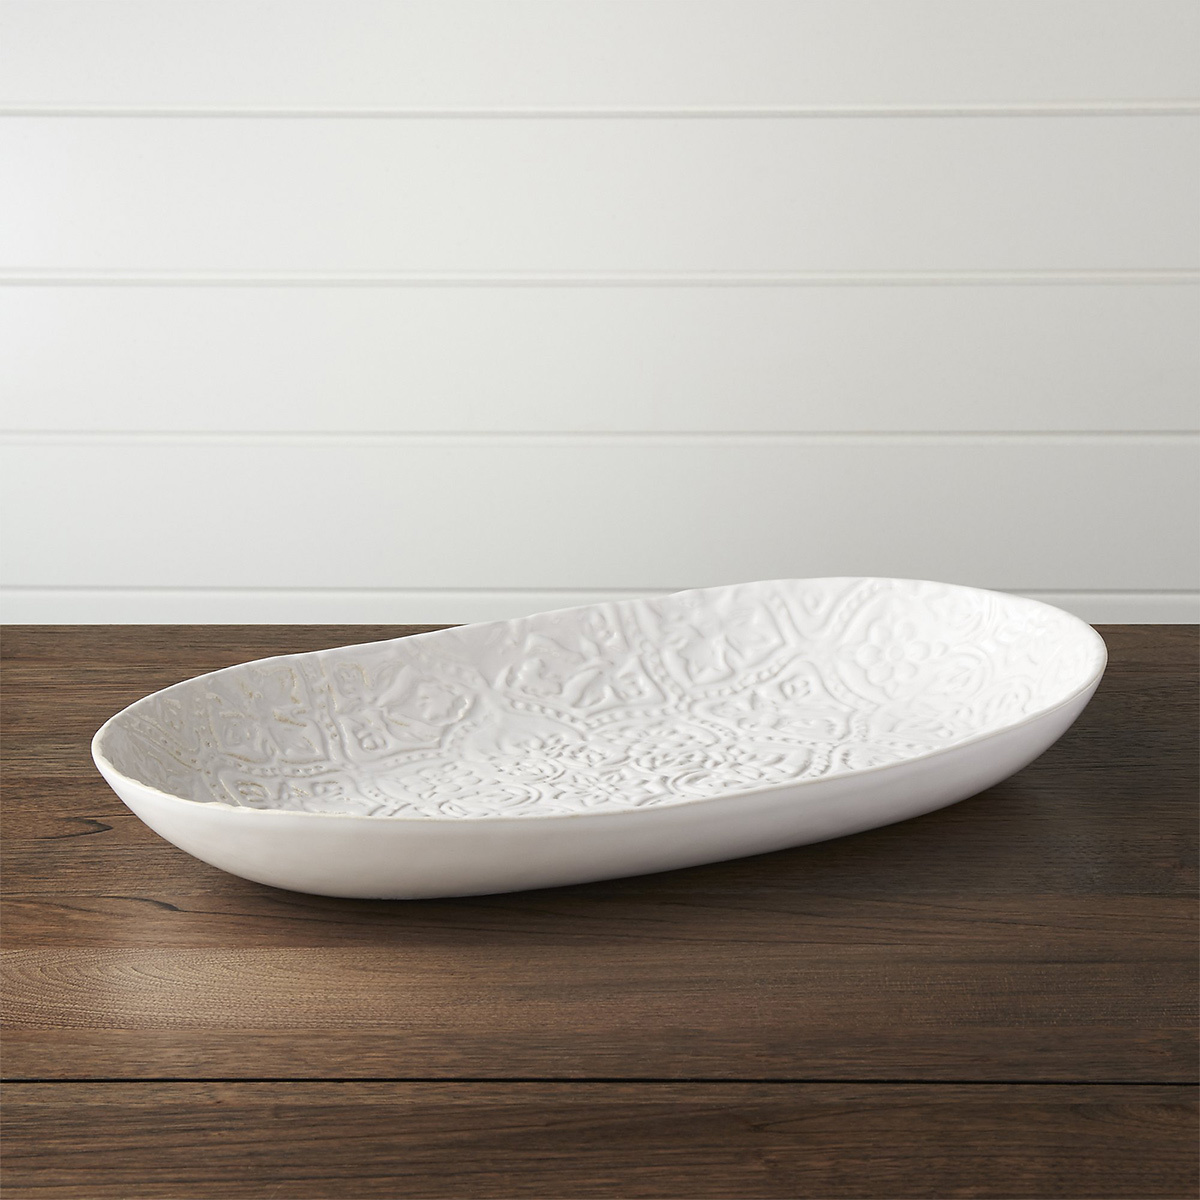 White platter dish in an oval shape photo